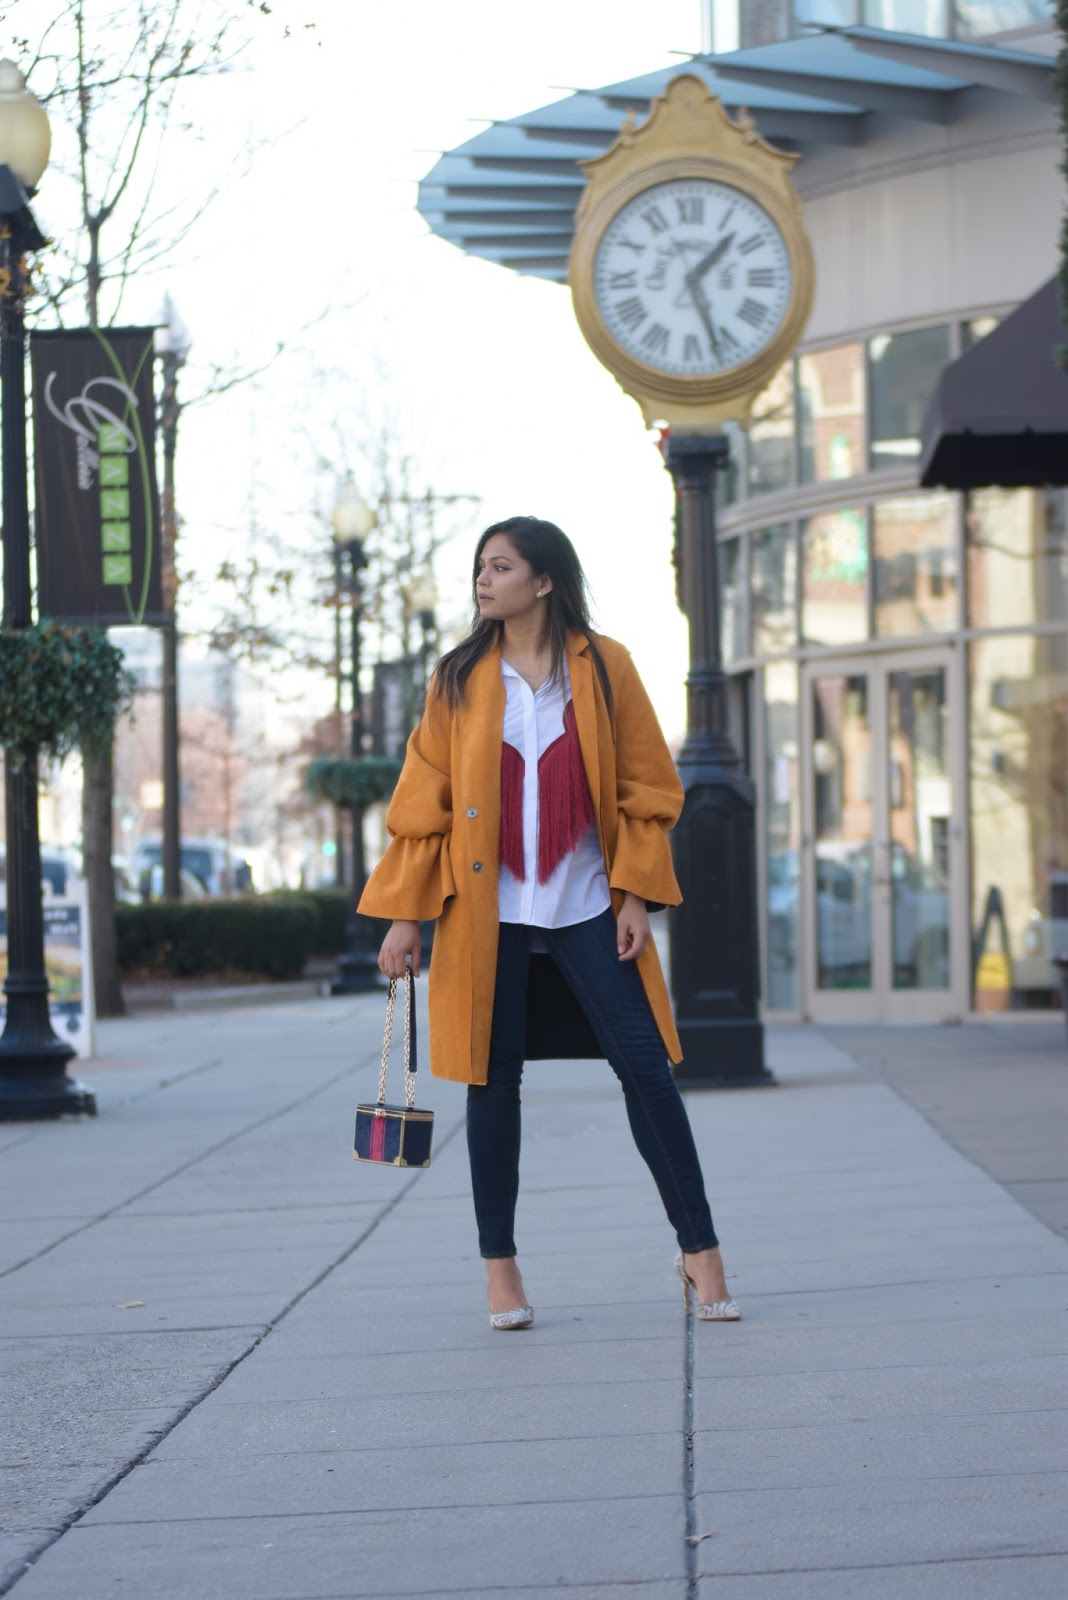 how to wear tassel in winter, denim outfit, mustard suede ruffle sleeve forever 21 coat, suede jacket, casul, street style, fashion, casual holiday look, myriad musings